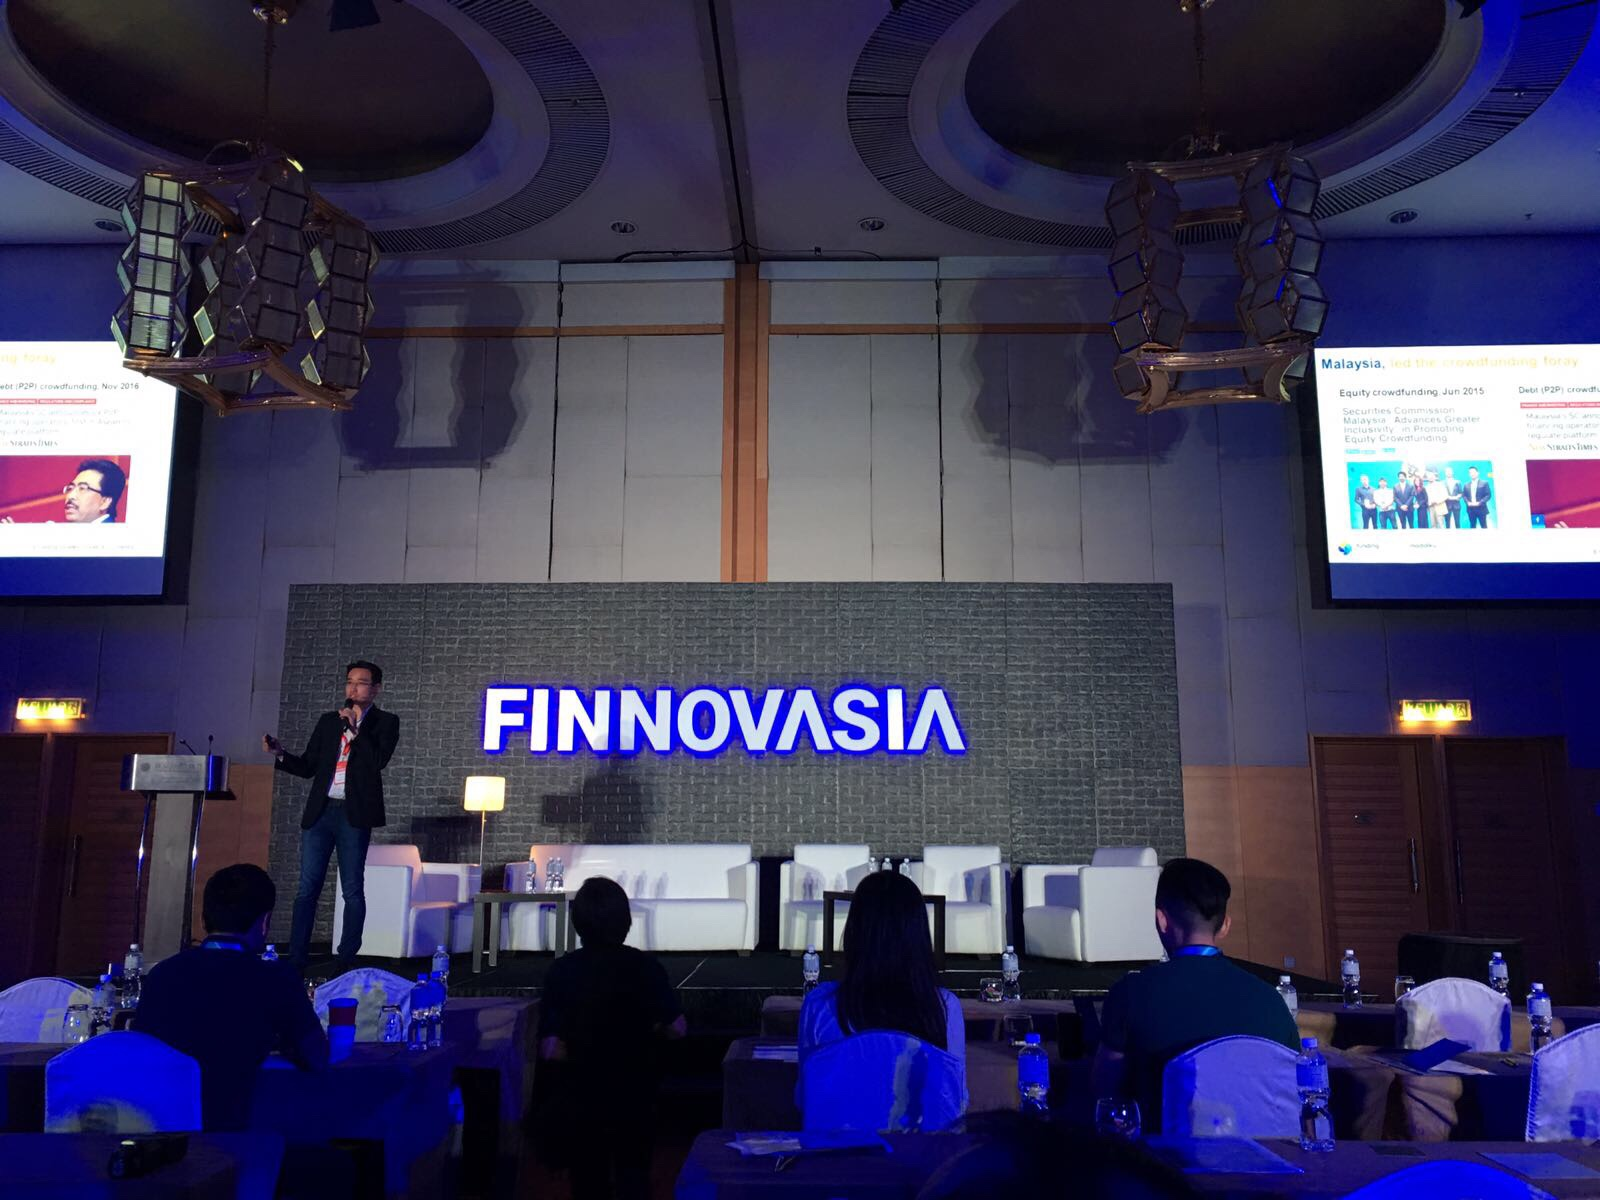 Funding Societies Co-Founder Kelvin Teo at FINNOVASIA KL 2017